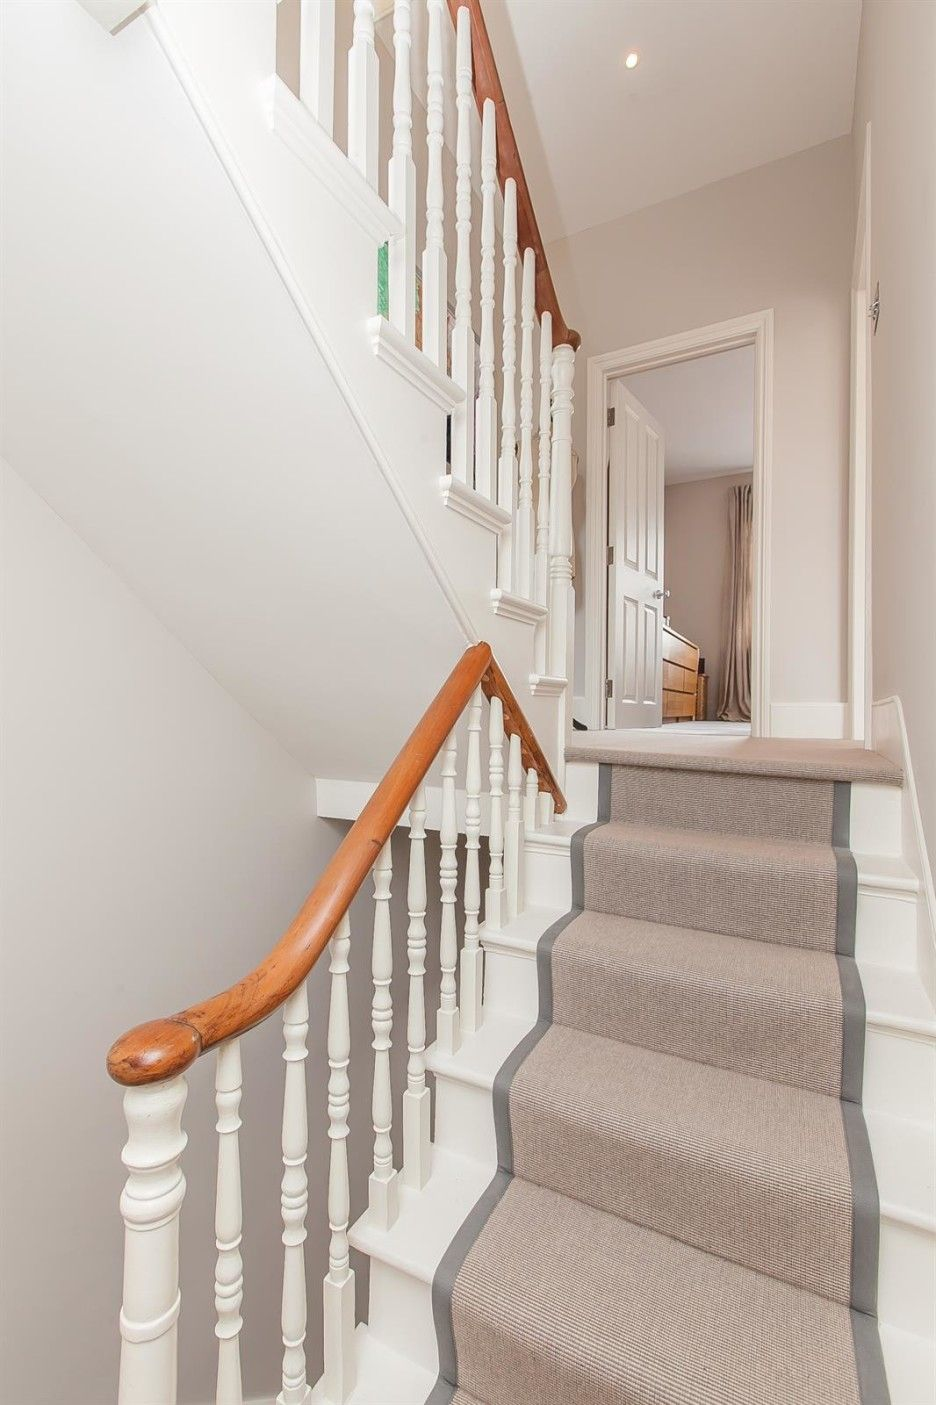 High Quality And Affordable Carpet Runners For Stairs : Stairway Carpet  Runners. Carpet Runner For Wood Stairs,carpet Runners For Stairs Ideas, Carpet ...